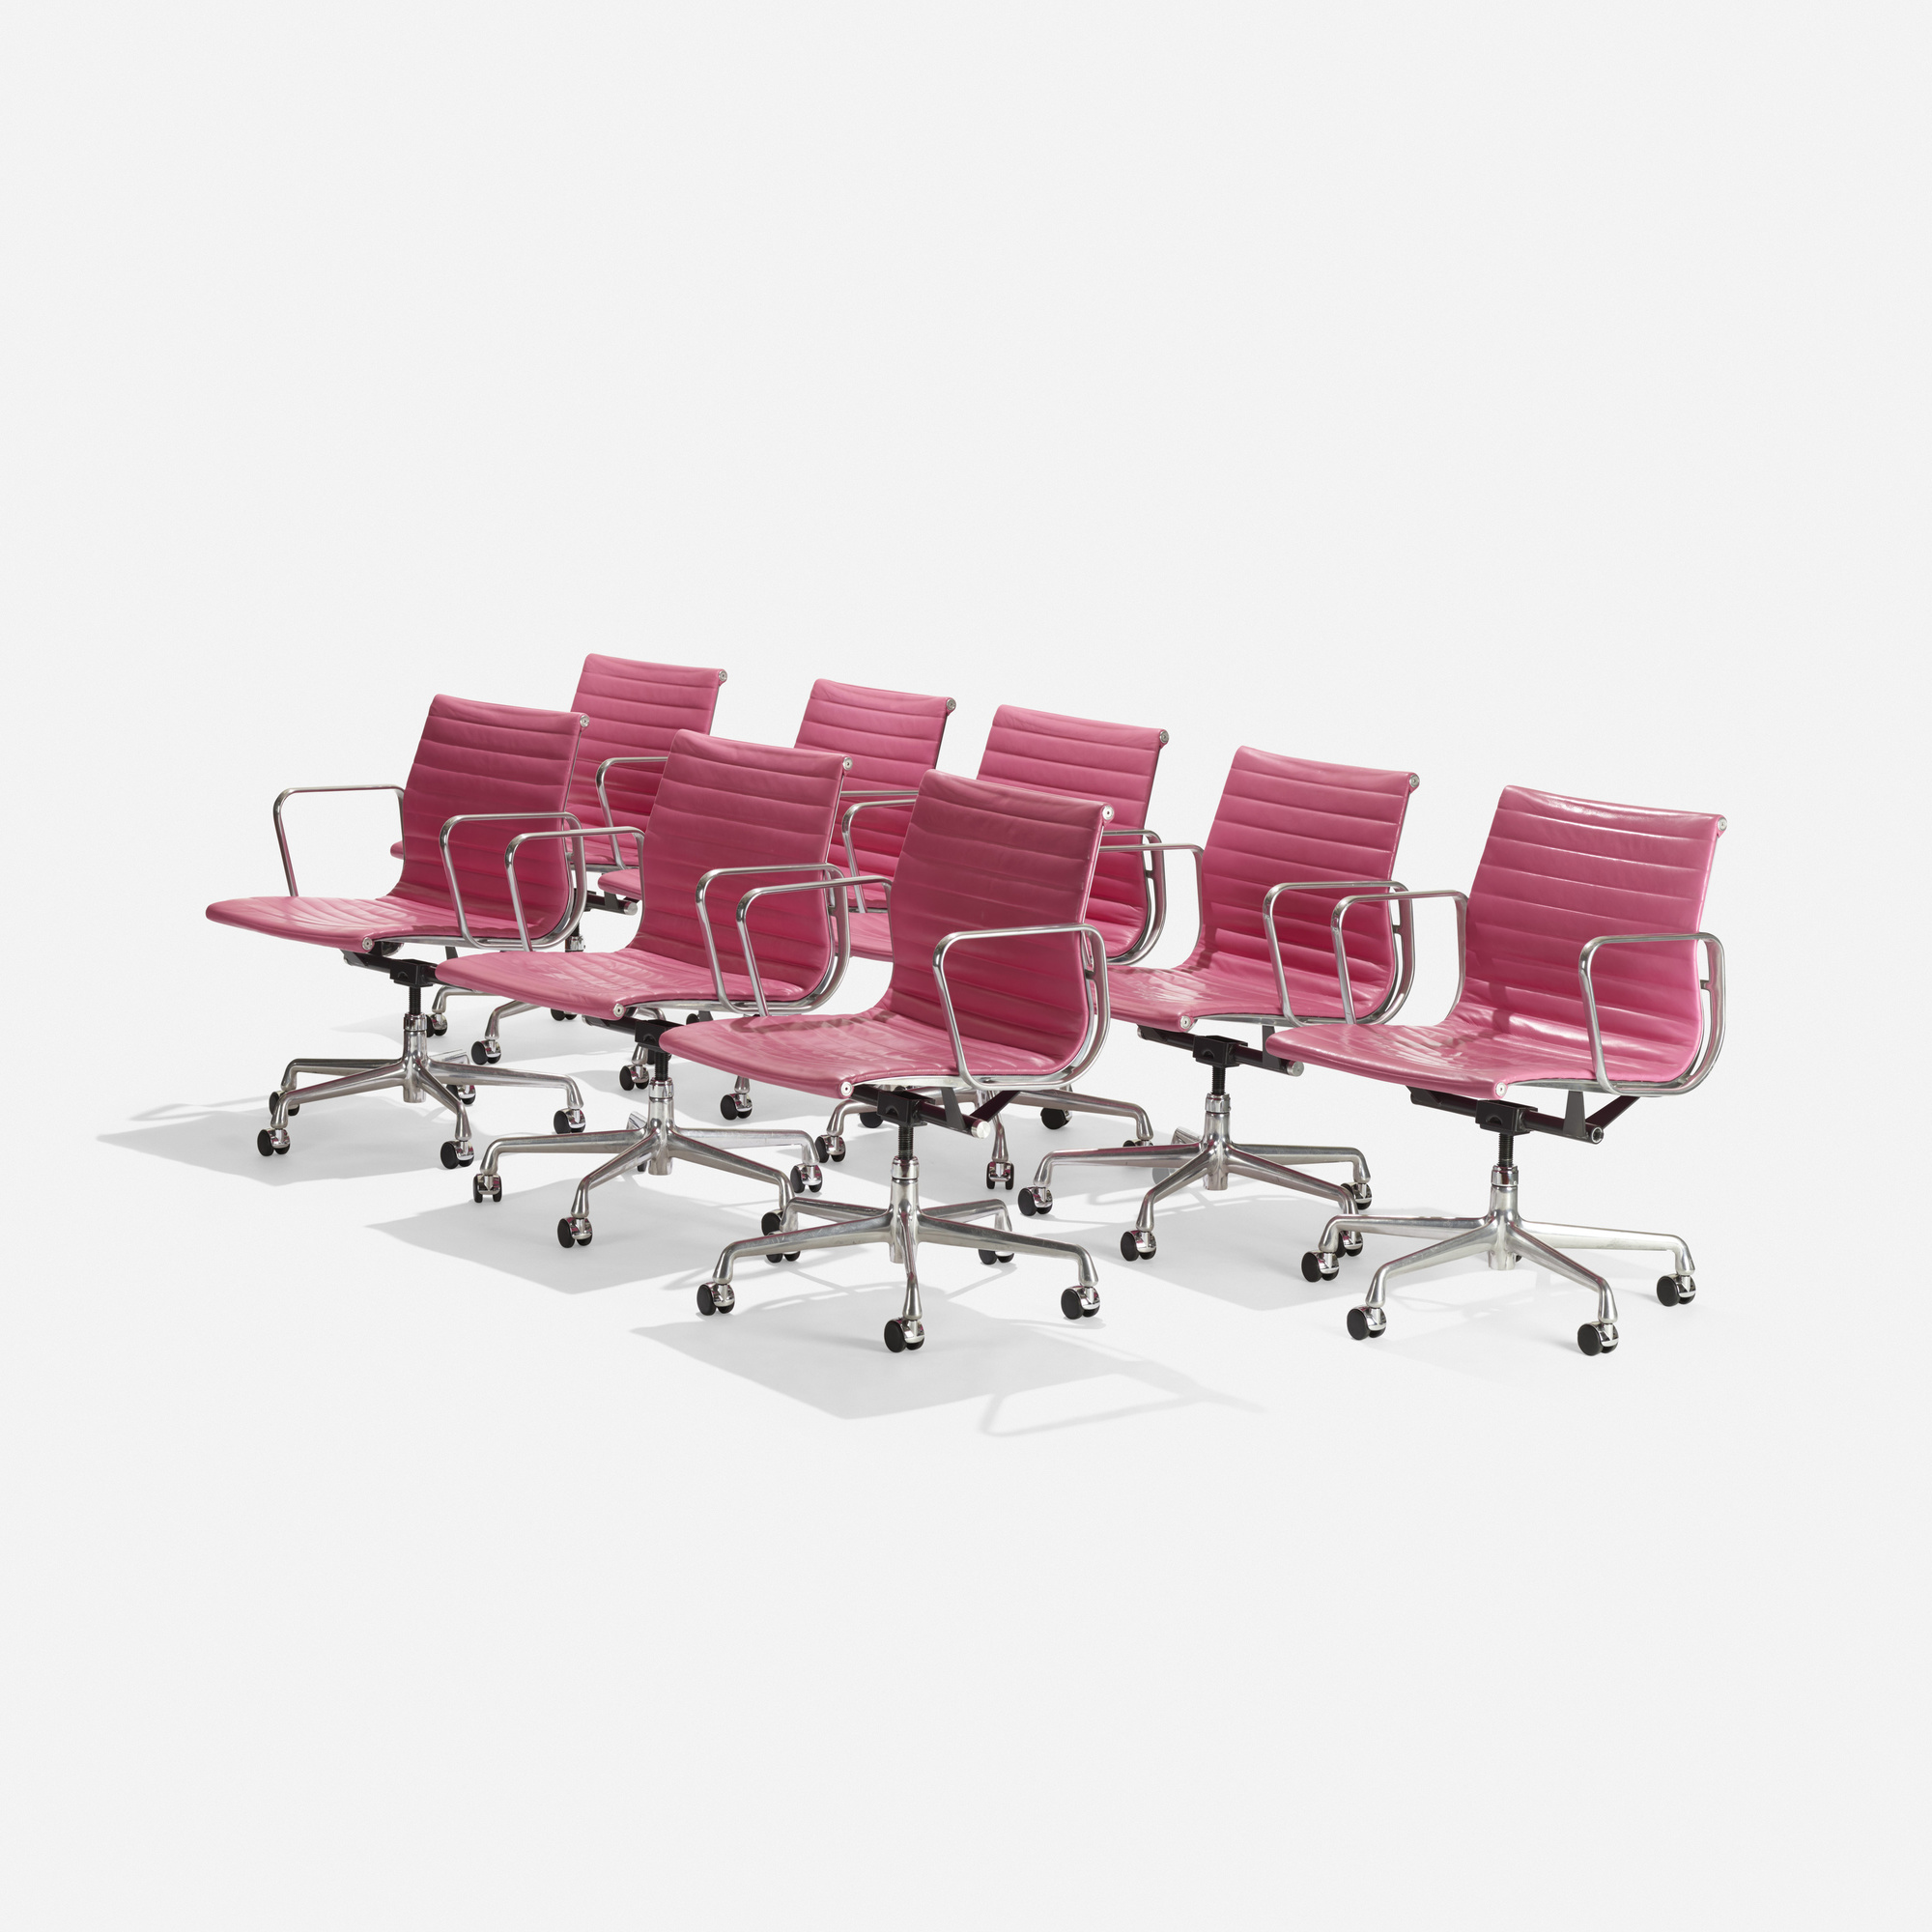 127: Charles and Ray Eames / Aluminum Group office chairs, set of eight (1 of 3)